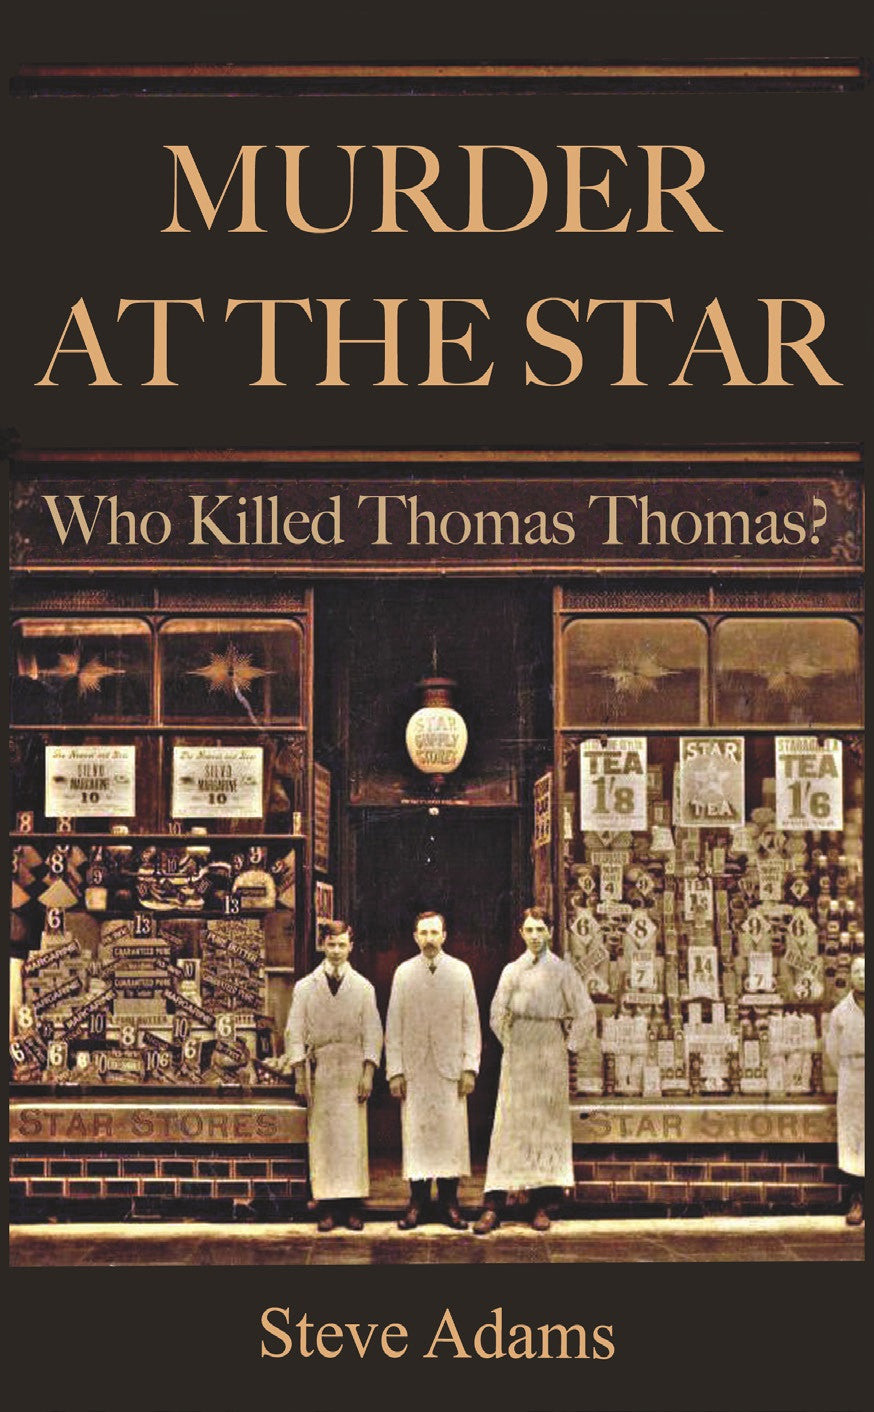 Murder at the Star